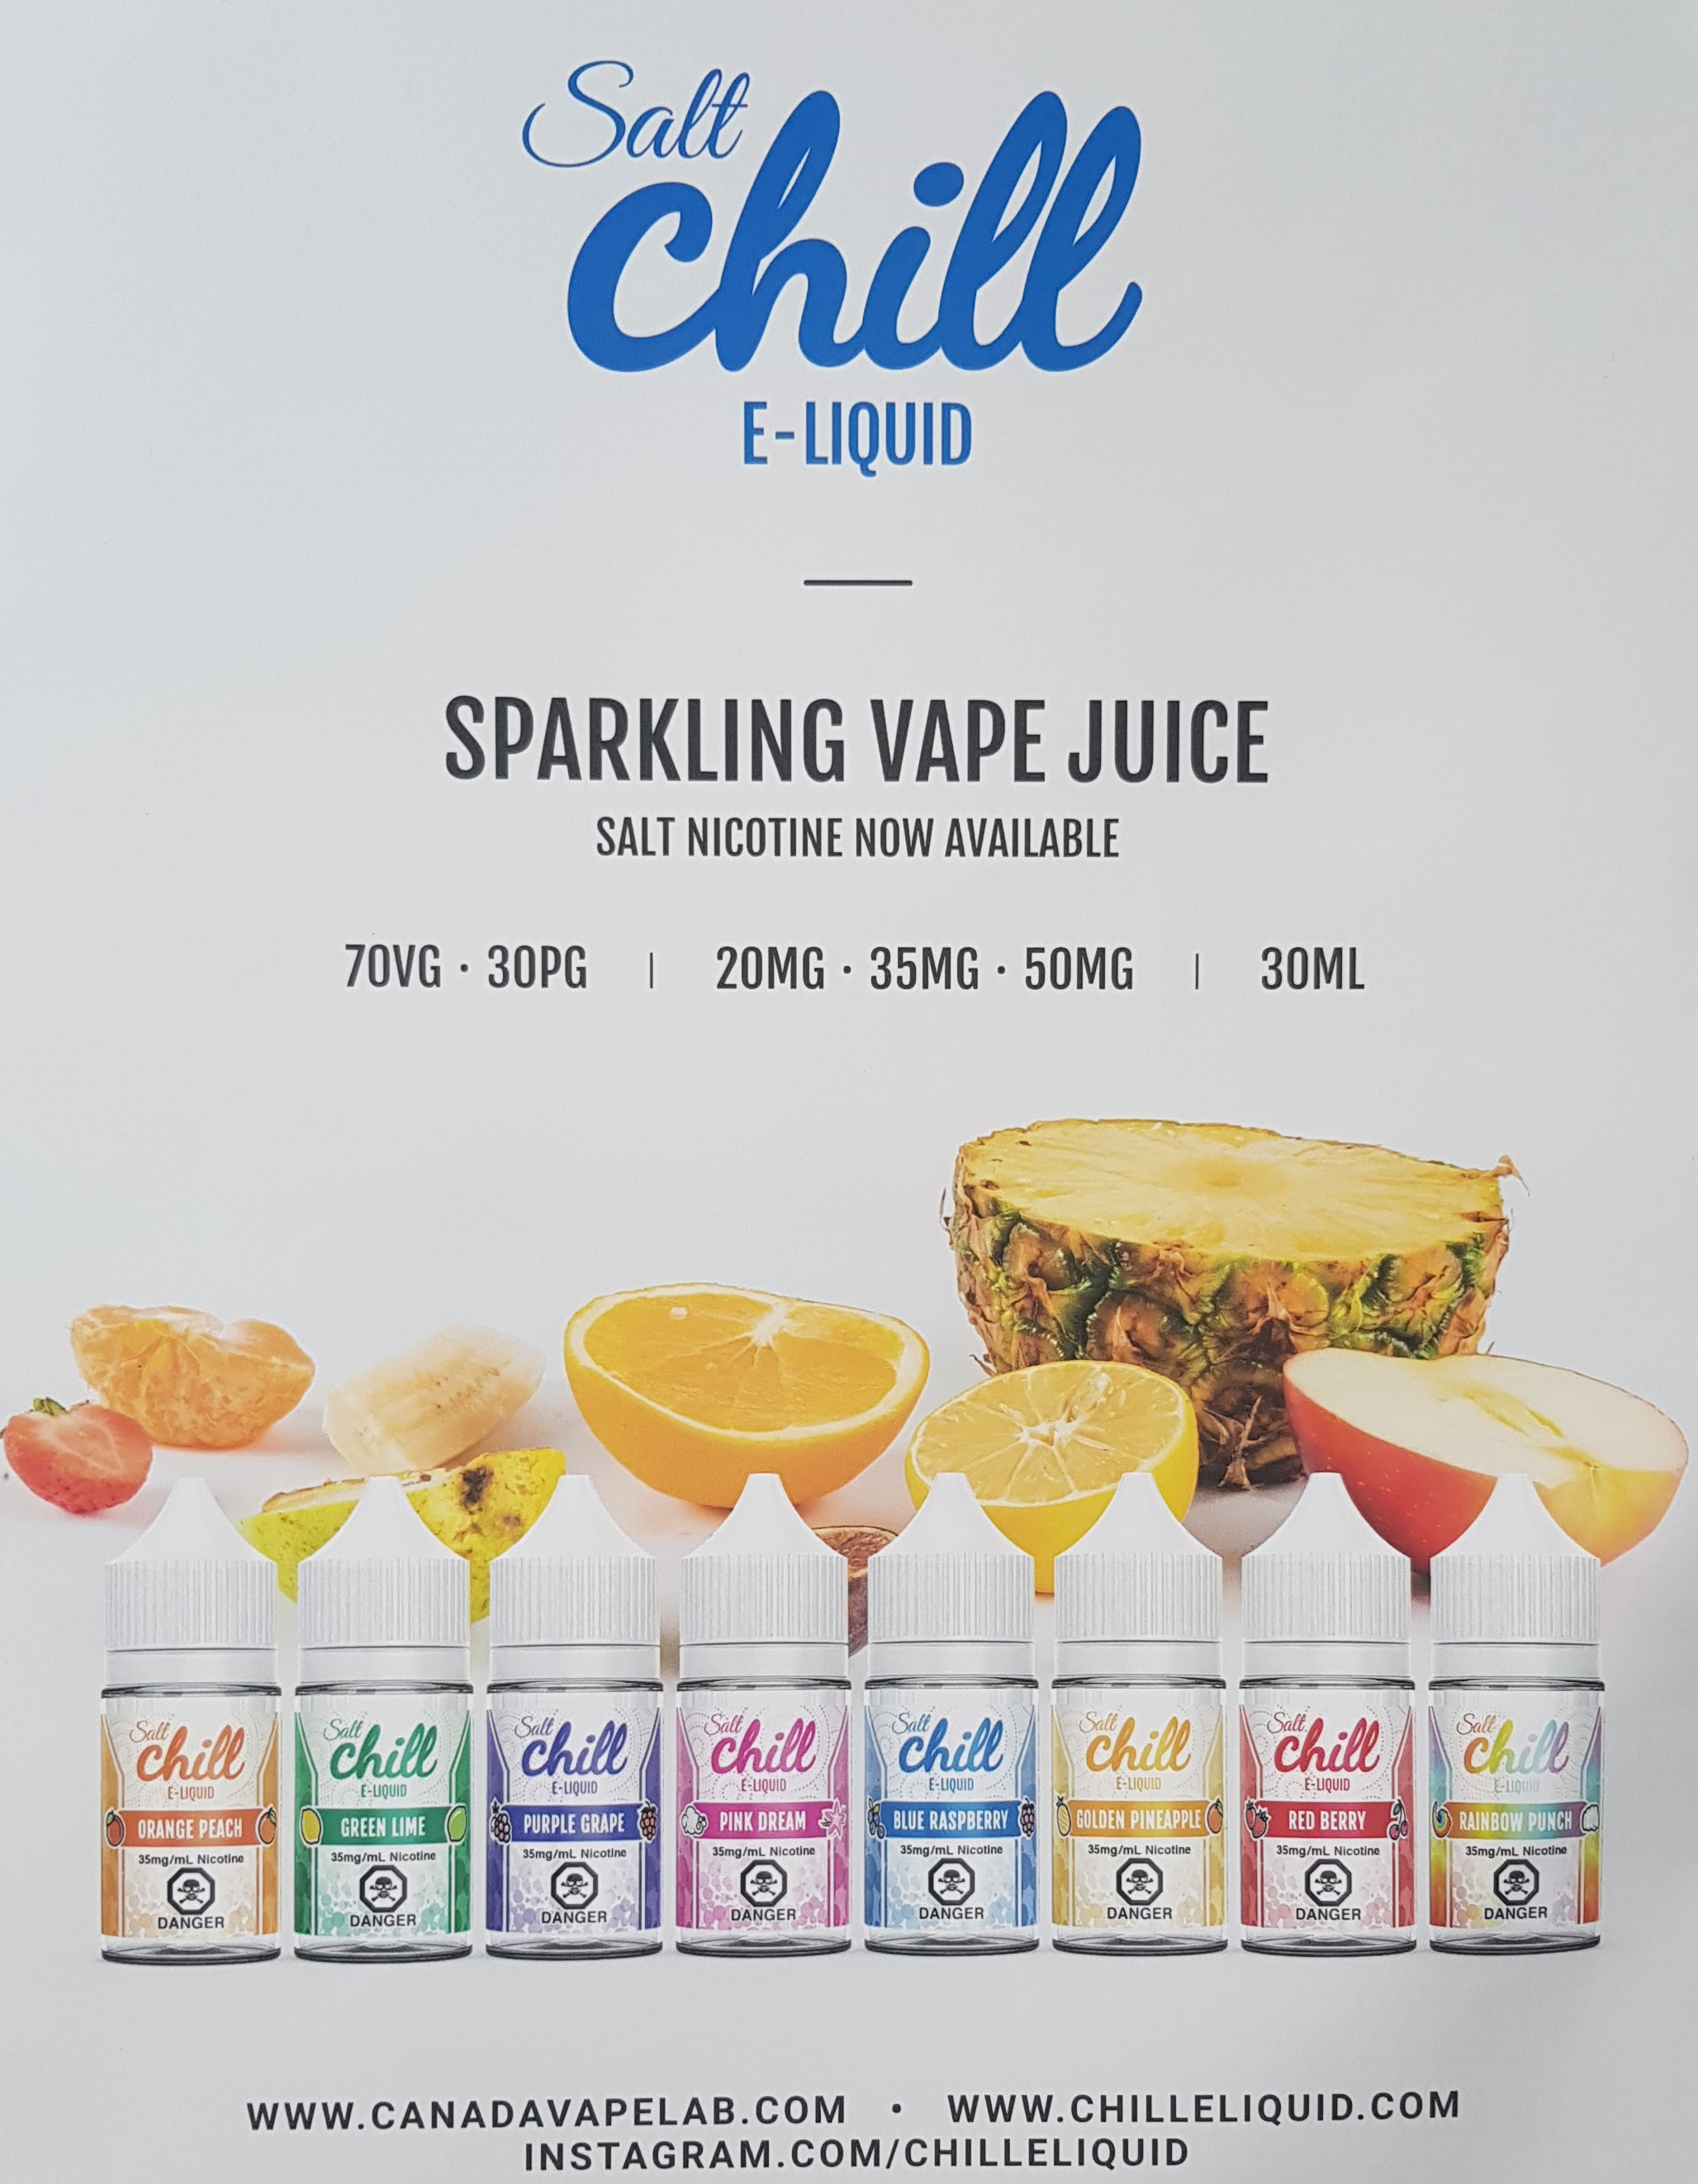 Salt Chill e-liquid Capital Vape & Cigar Edmonton Ab